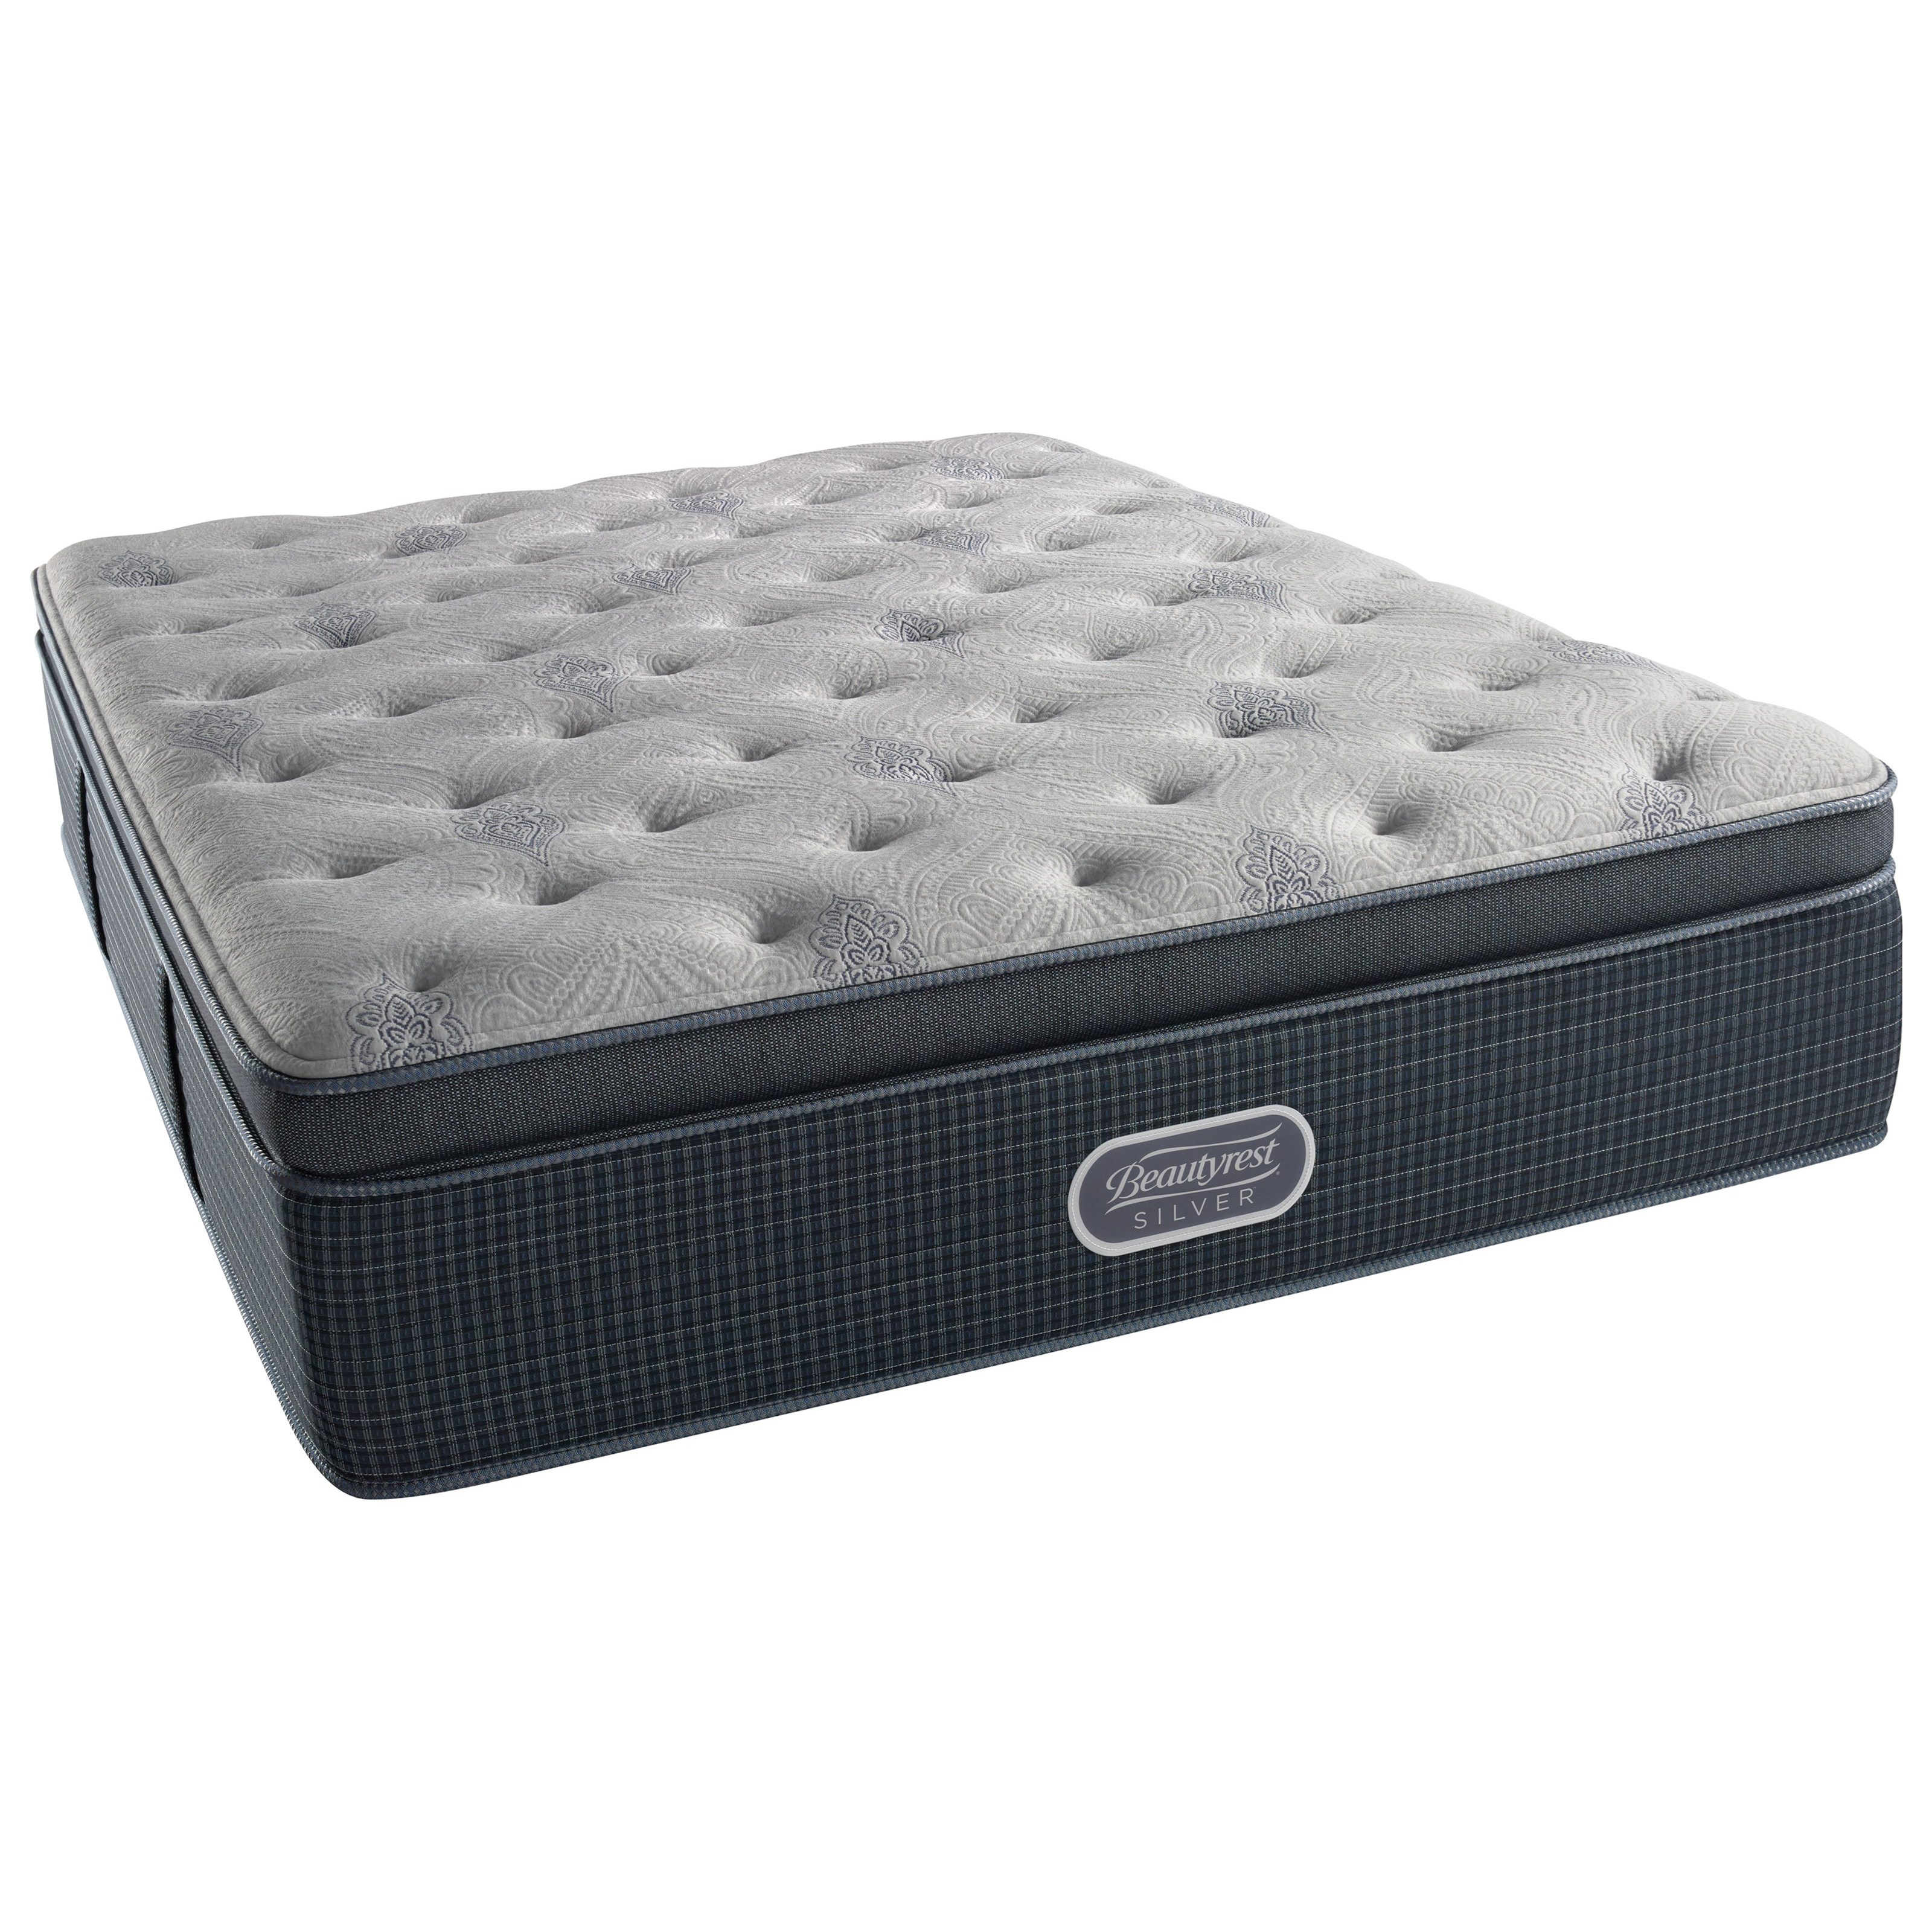 "Simmons Kingston Island PT Lux Firm Twin 15.5"" Luxury Firm Summit PT Mattress - Item Number: 700600249-1010"